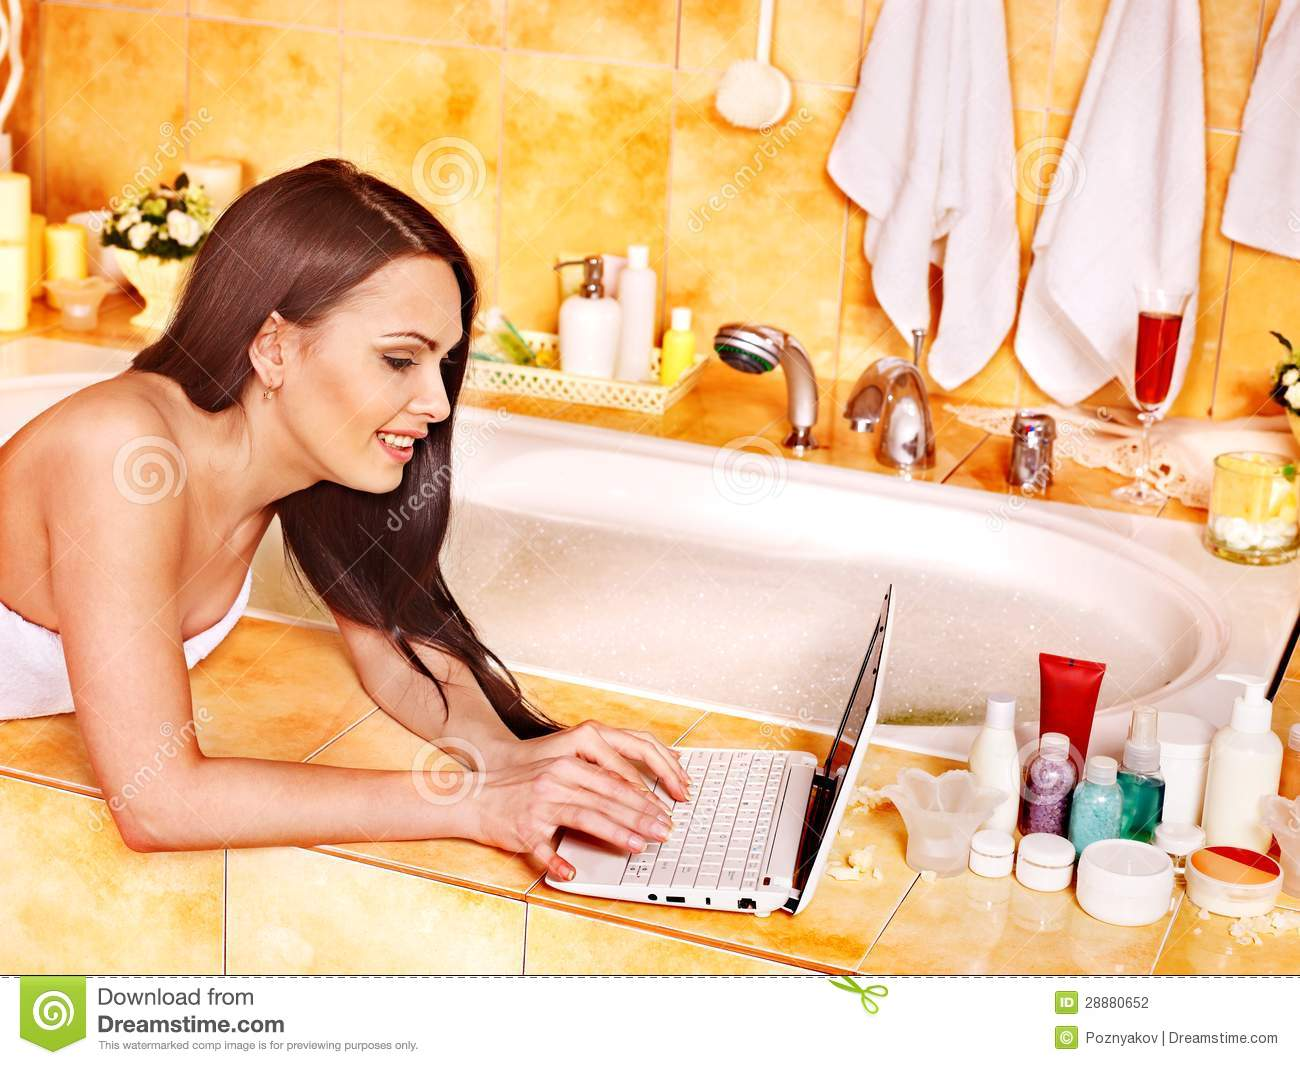 Woman Relaxing At Home Luxury Bath Stock Photography